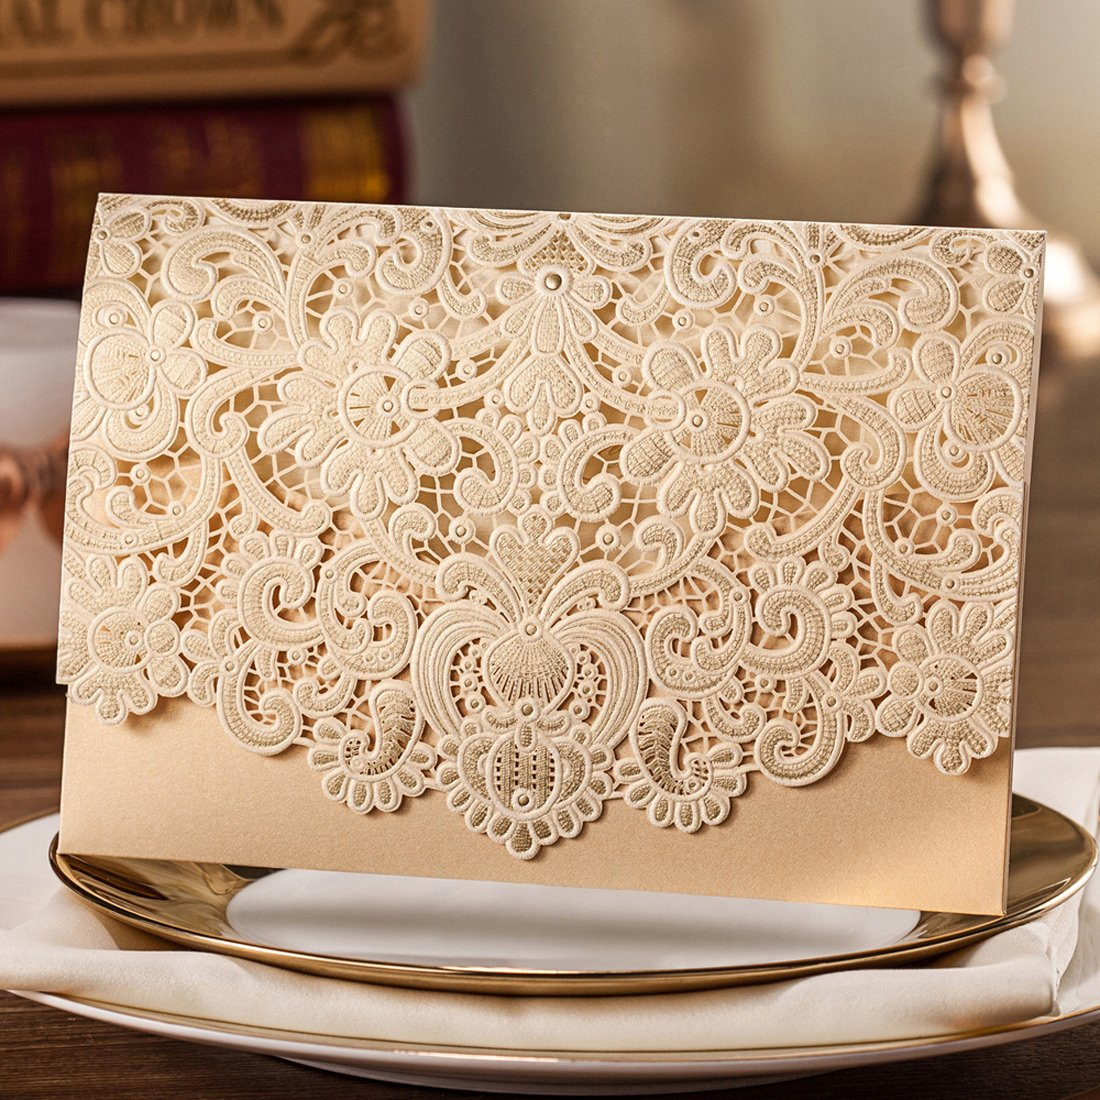 Wishmade 50 Pieces Gold Horizontal Laser Cut Wedding Invitation with Embossed Hollow Flora Favors Printable Gold Cardstock with Envelope & Seal (pack of 50pcs) CW072